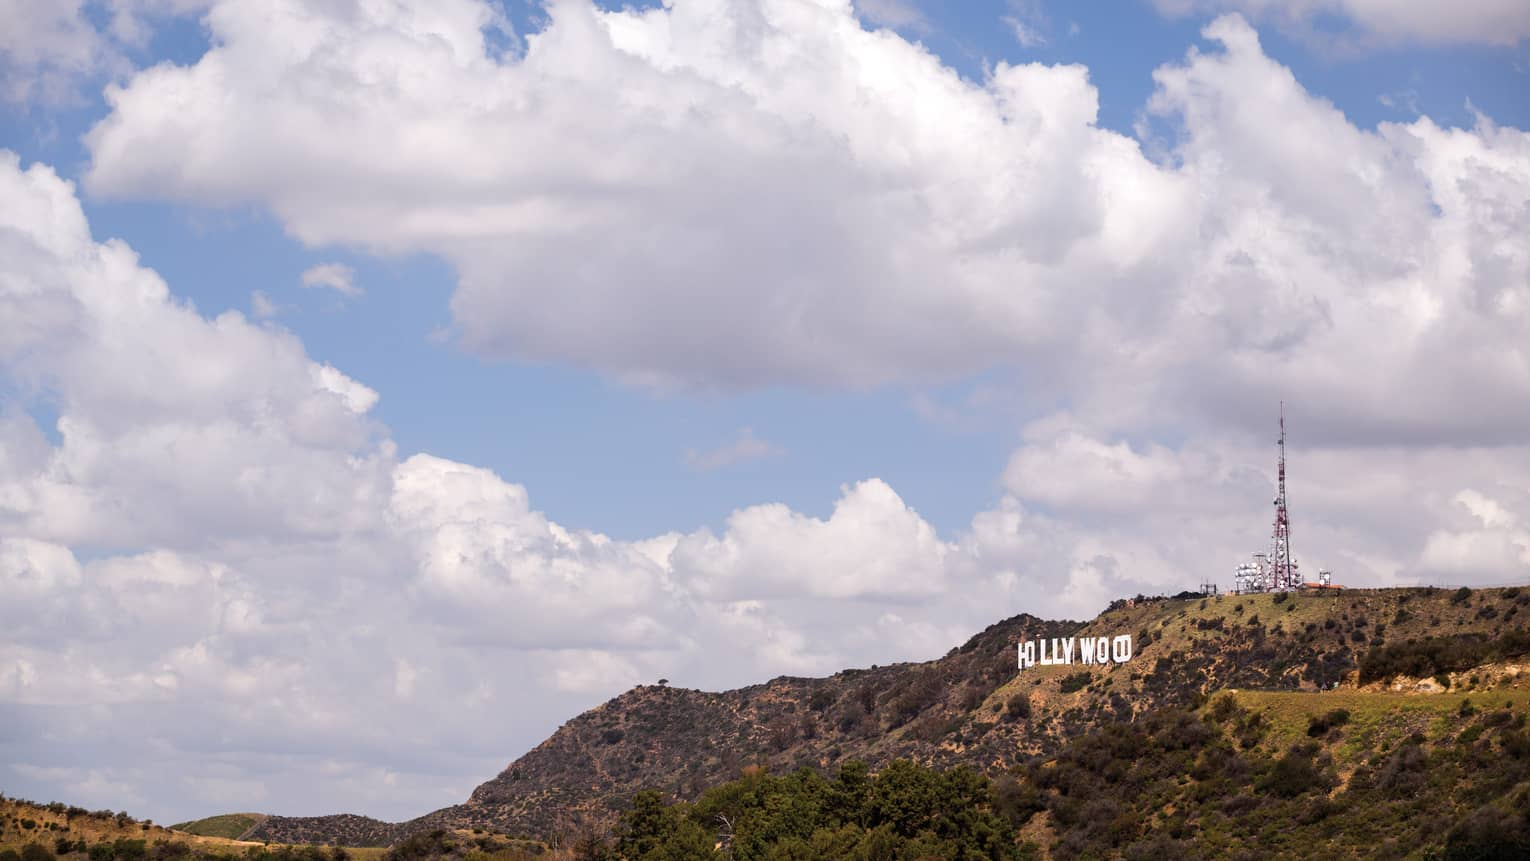 Hollywood sign on green Los Angeles hills against blue sky